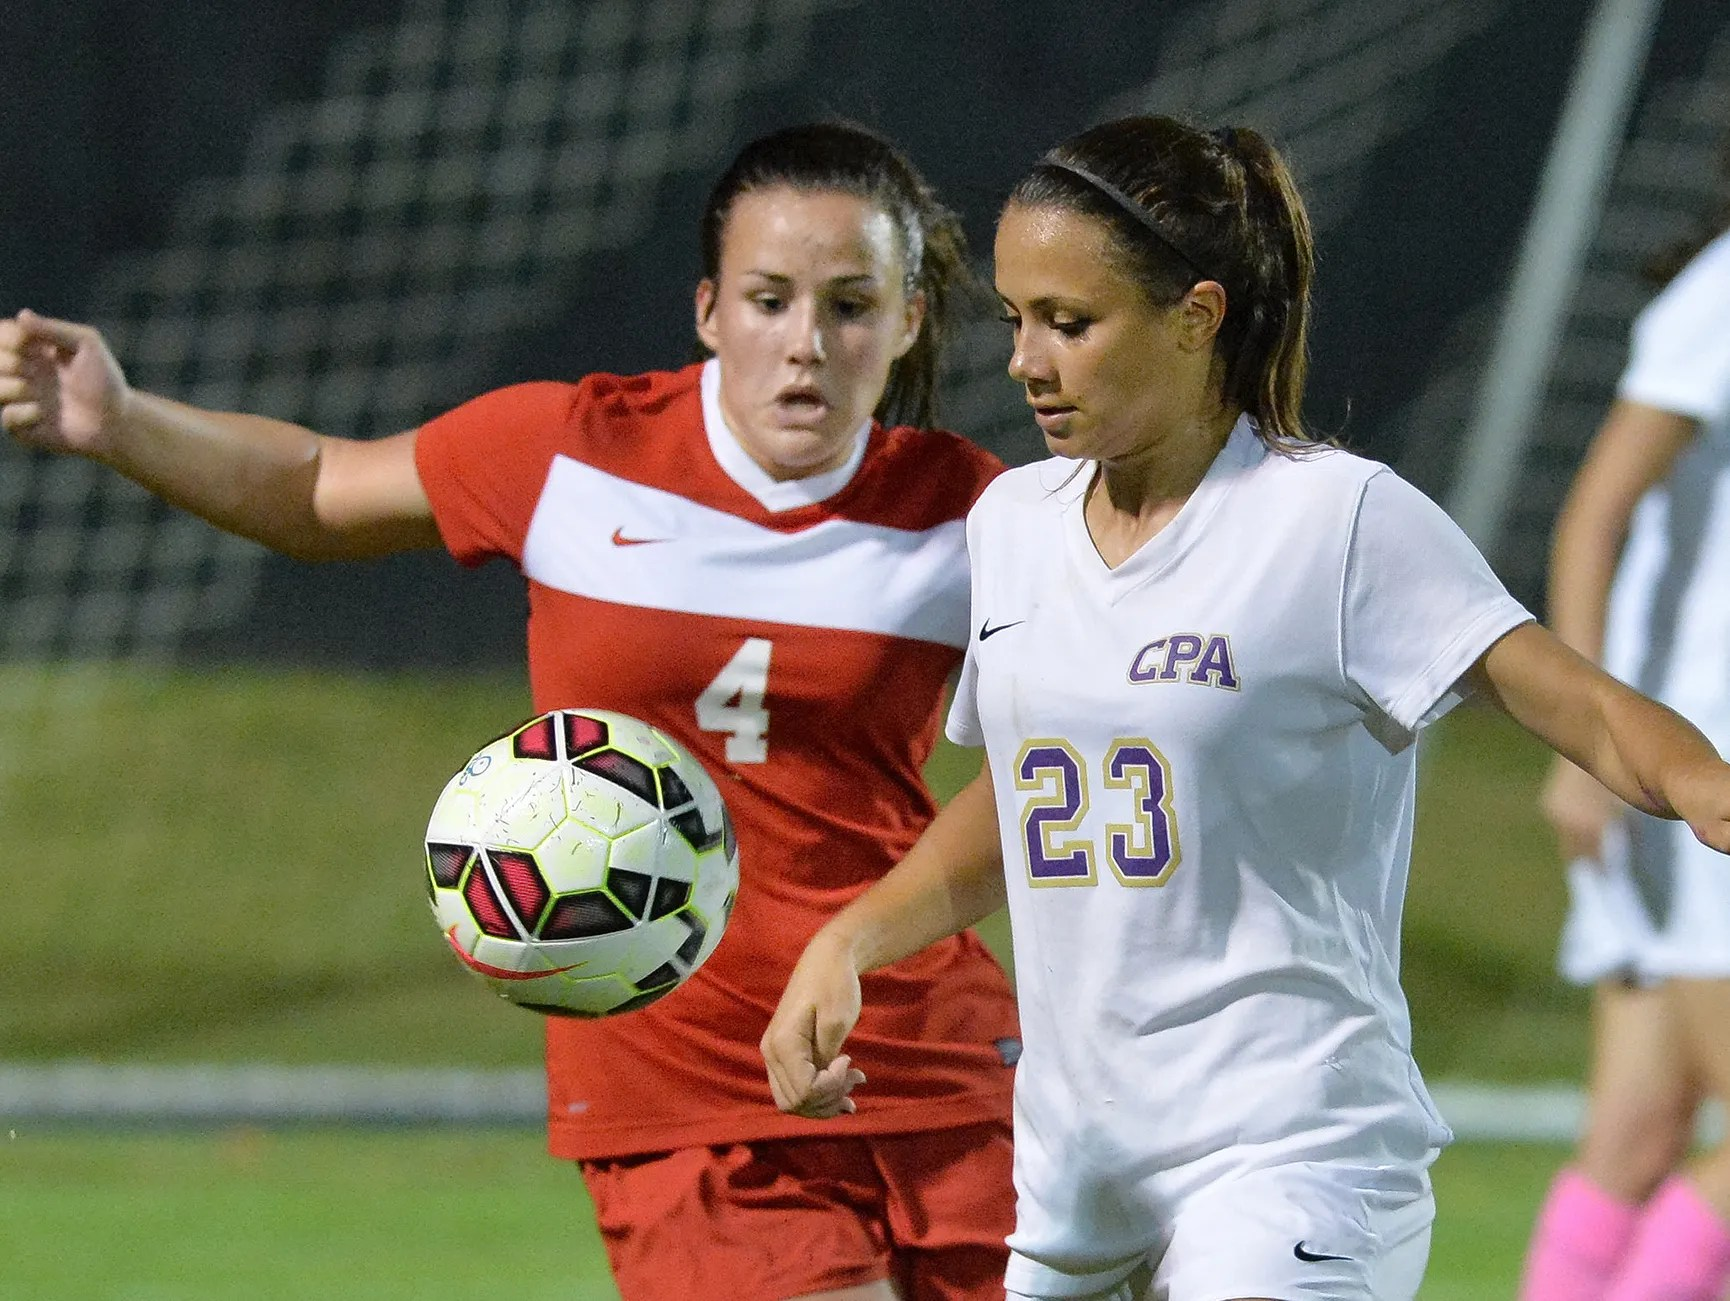 TSSAA State Soccer Tournament primer | USA Today High School Sports | USA Today High School Sports